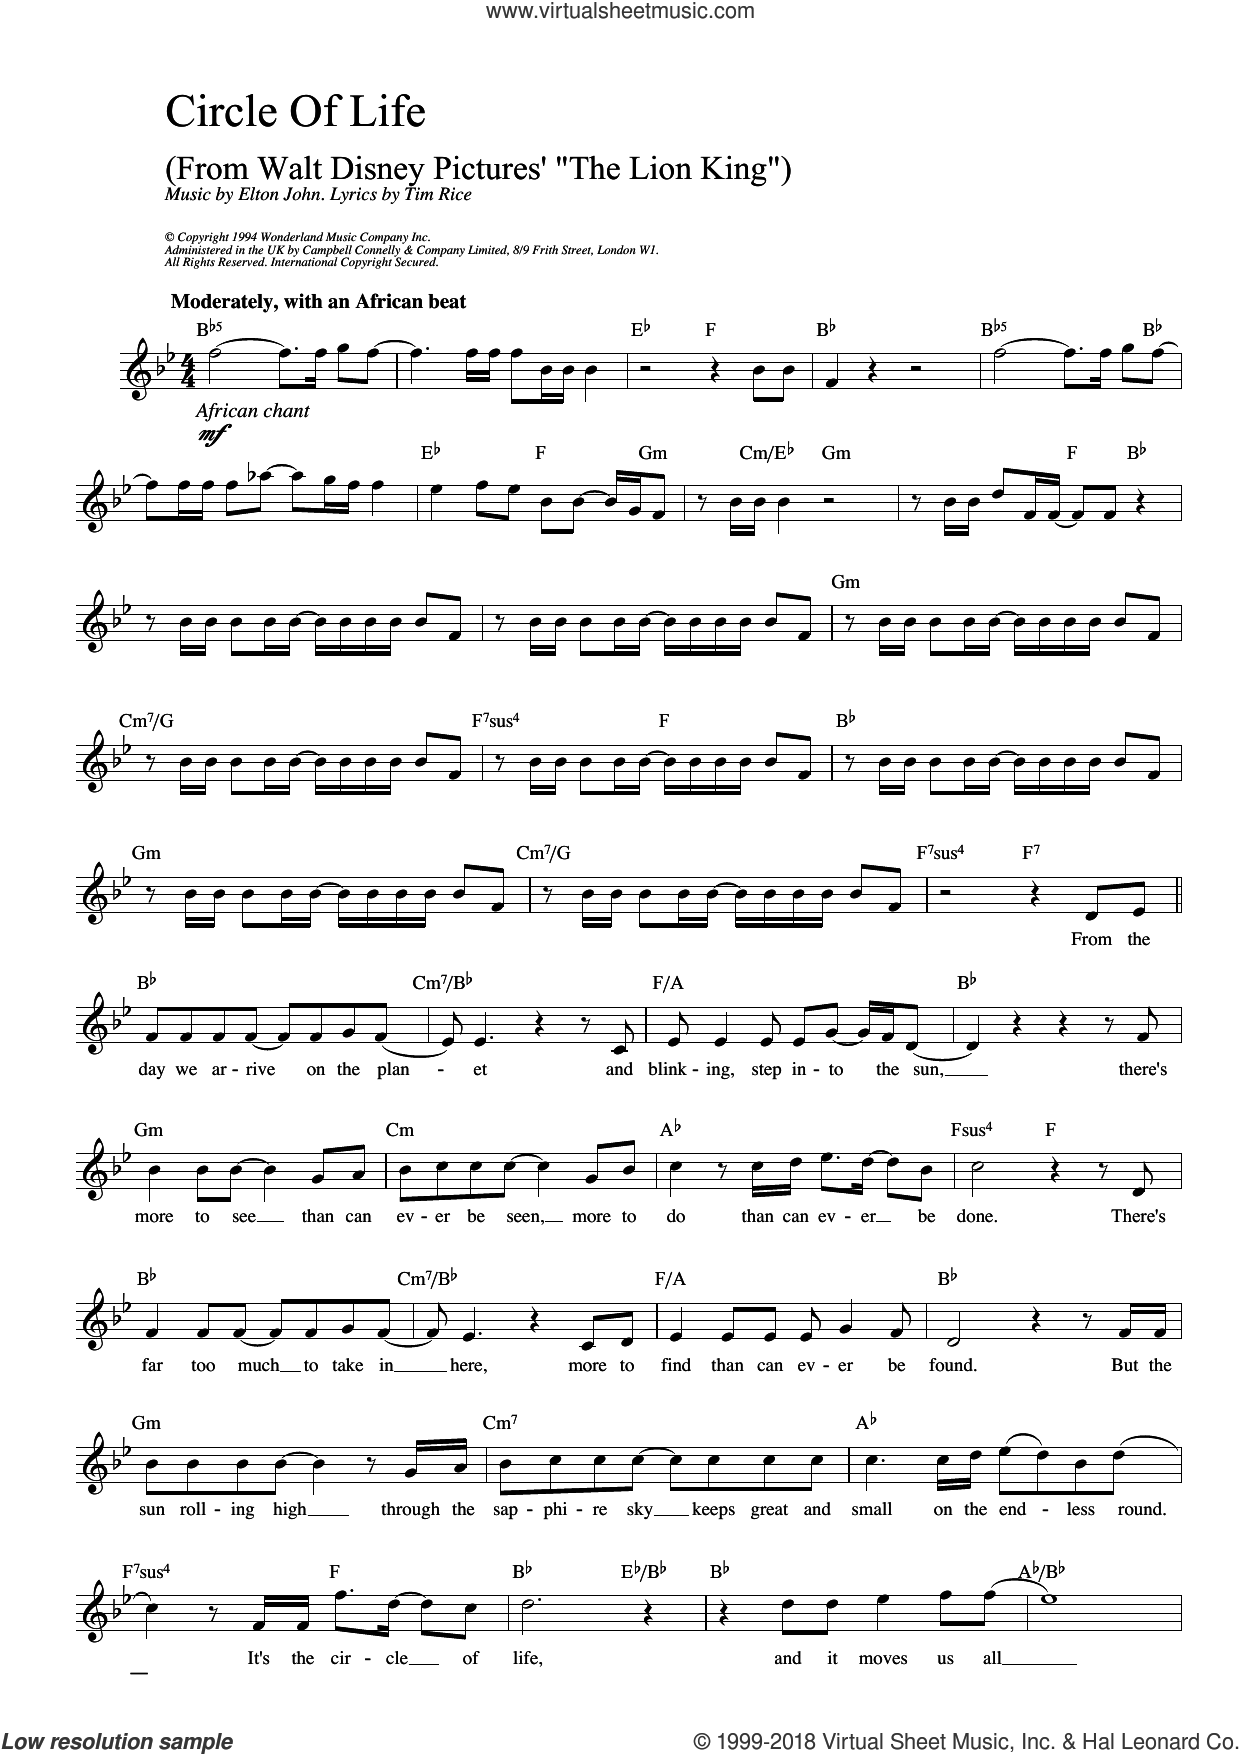 Circle Of Life (from The Lion King) sheet music for voice and other instruments (fake book) by Elton John, The Lion King and Tim Rice, intermediate skill level